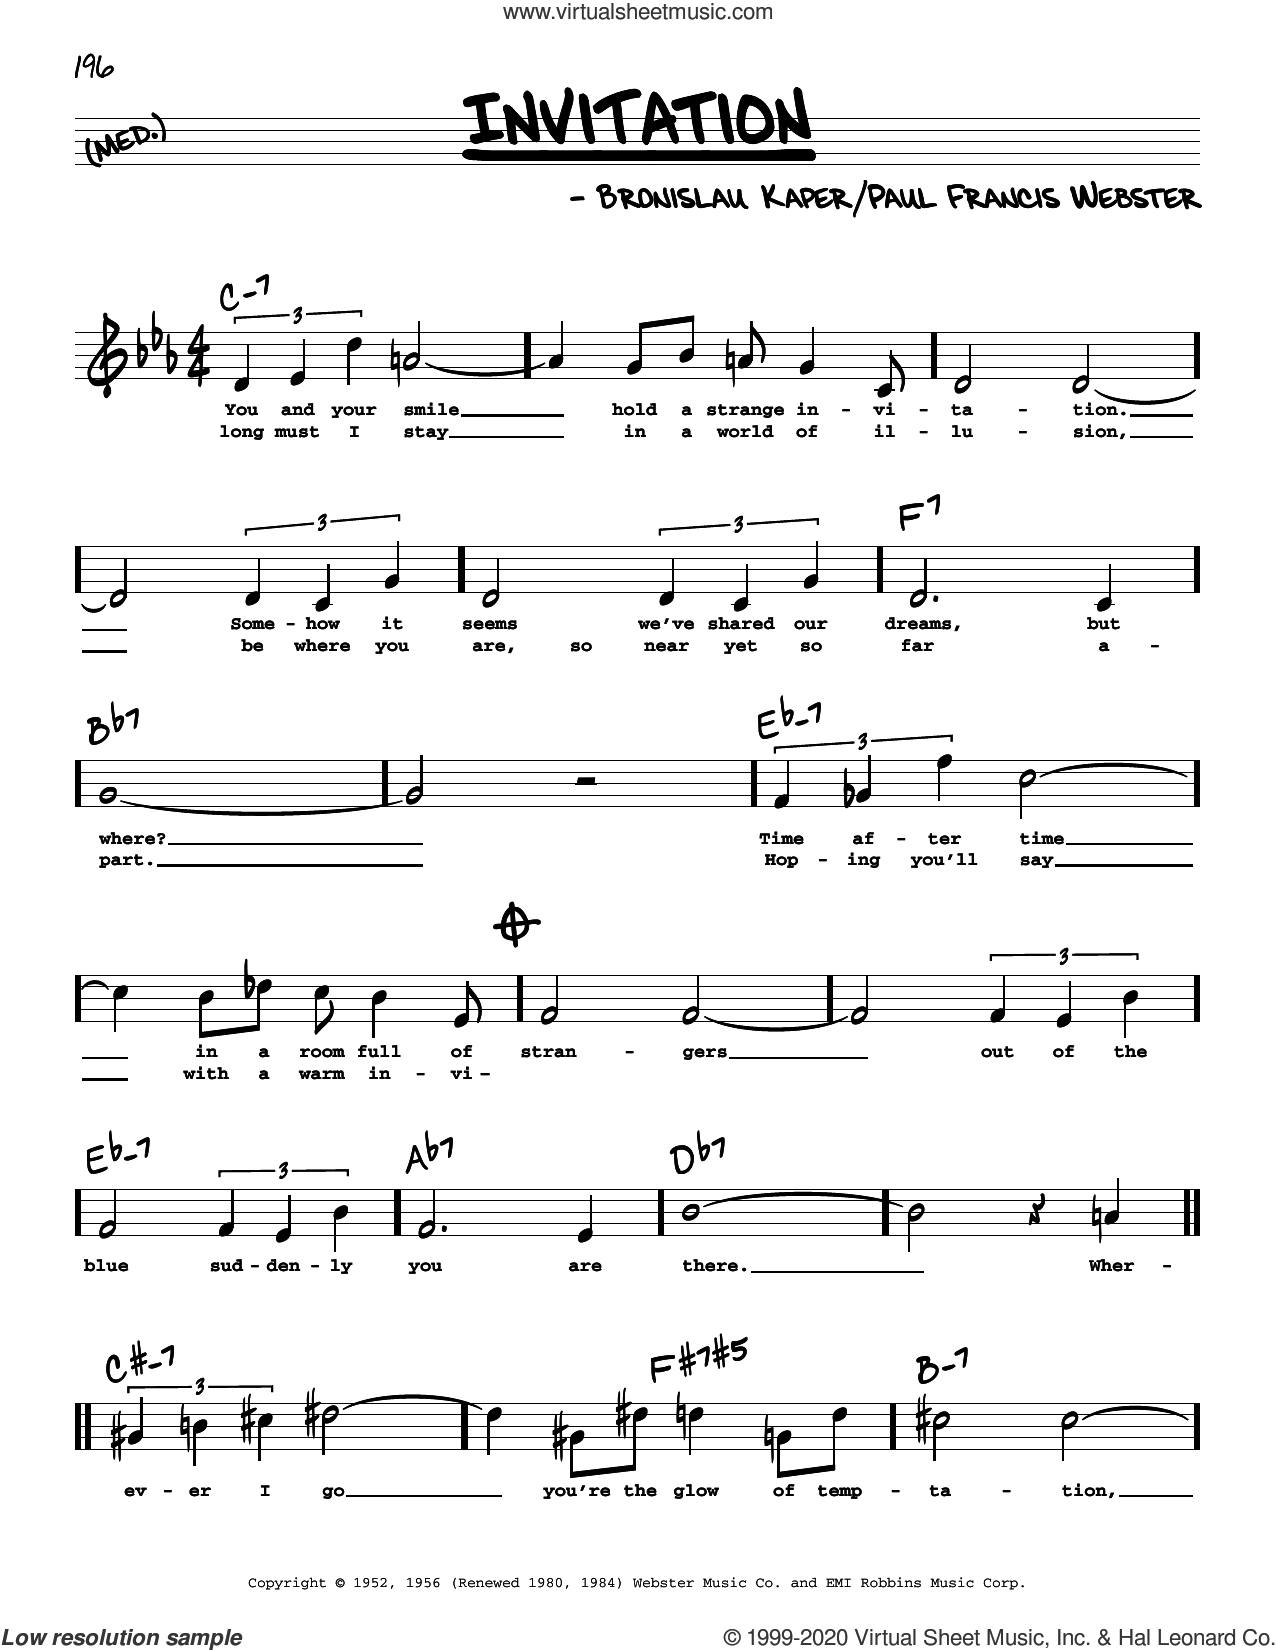 Invitation (High Voice) sheet music for voice and other instruments (high voice) by Paul Francis Webster and Bronislau Kaper, intermediate skill level